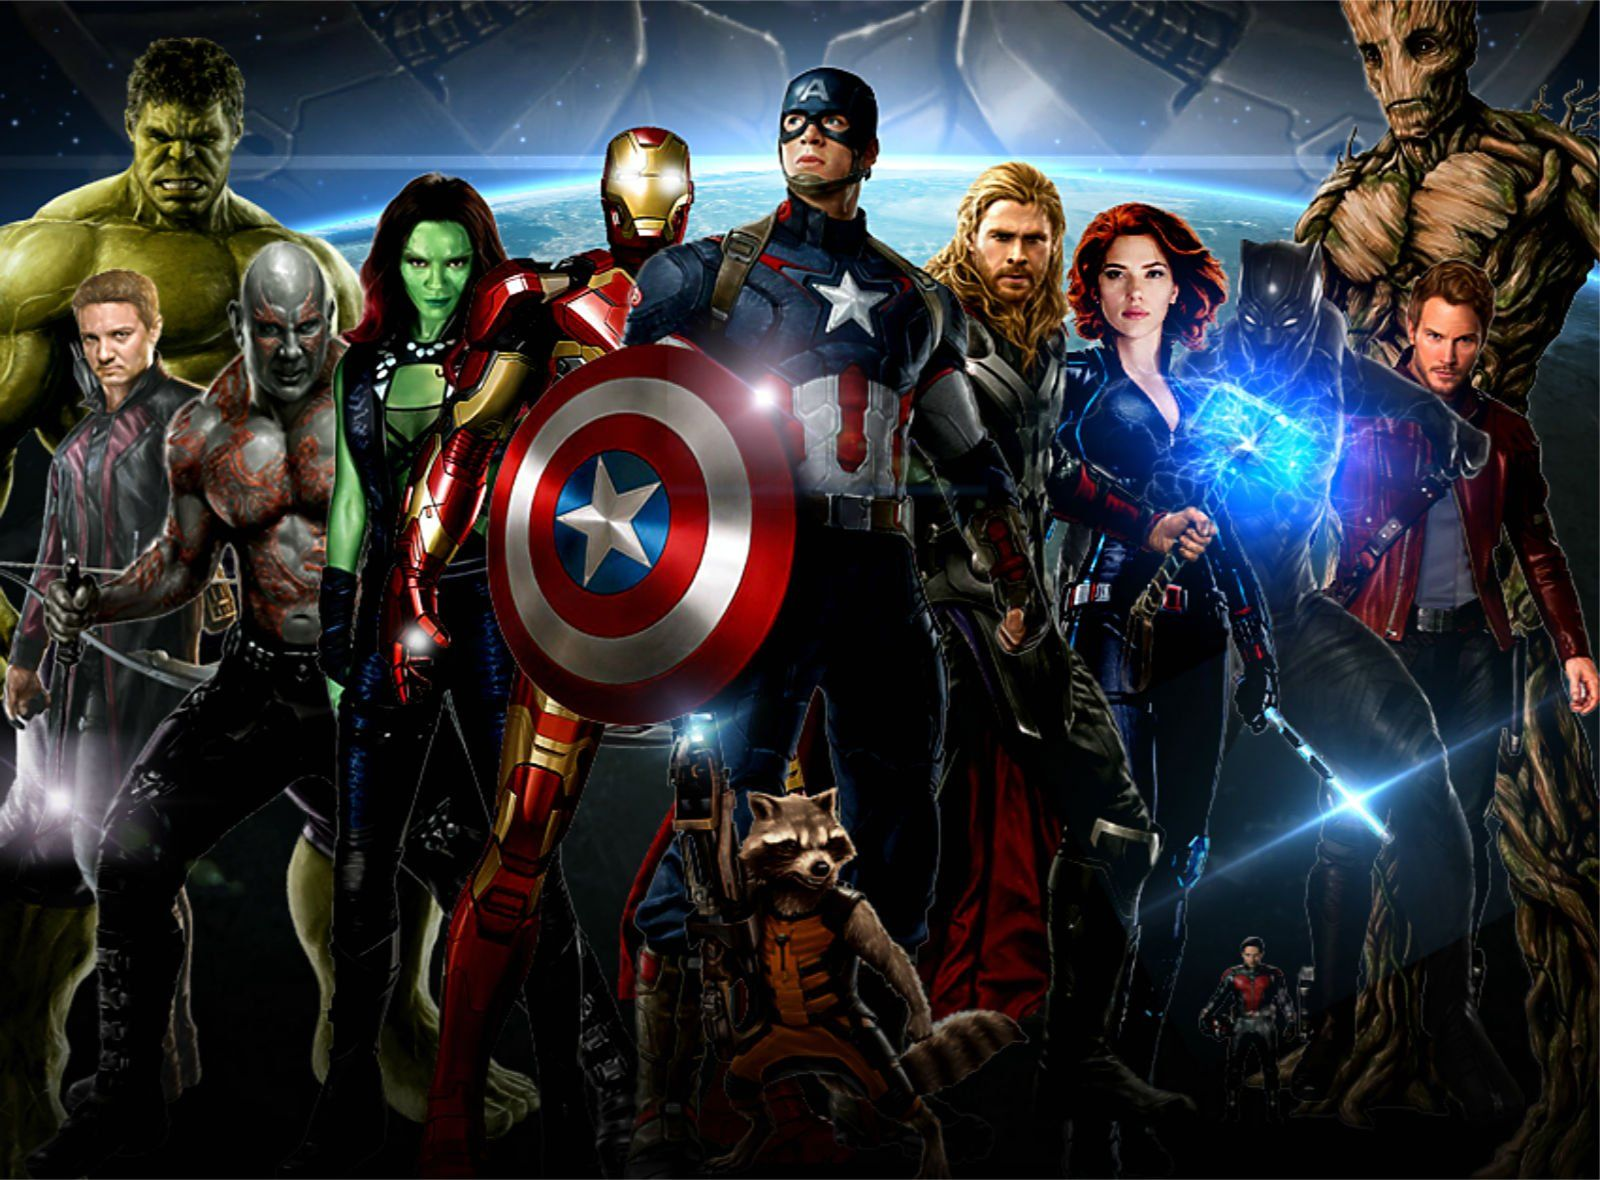 Avengers 3 Desktop Wallpaper Hd wallpapers for pc, Pc